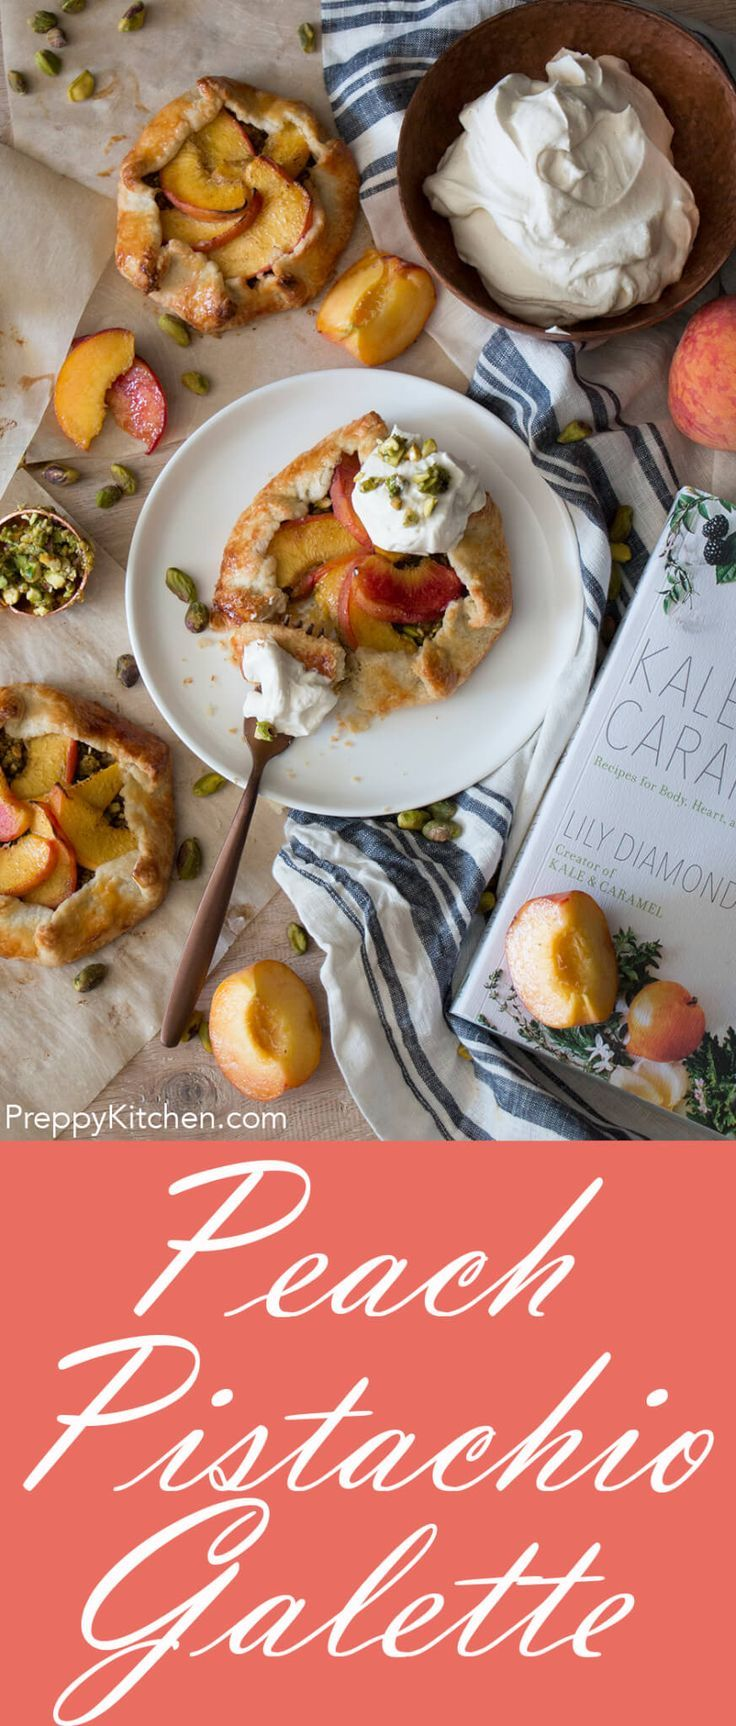 The most amazing peach and pistachio galettes with a dreamy rosewater cardamom cream. This incredible recipe is from the new cookbook by Kale & Caramel. via @preppykitchen